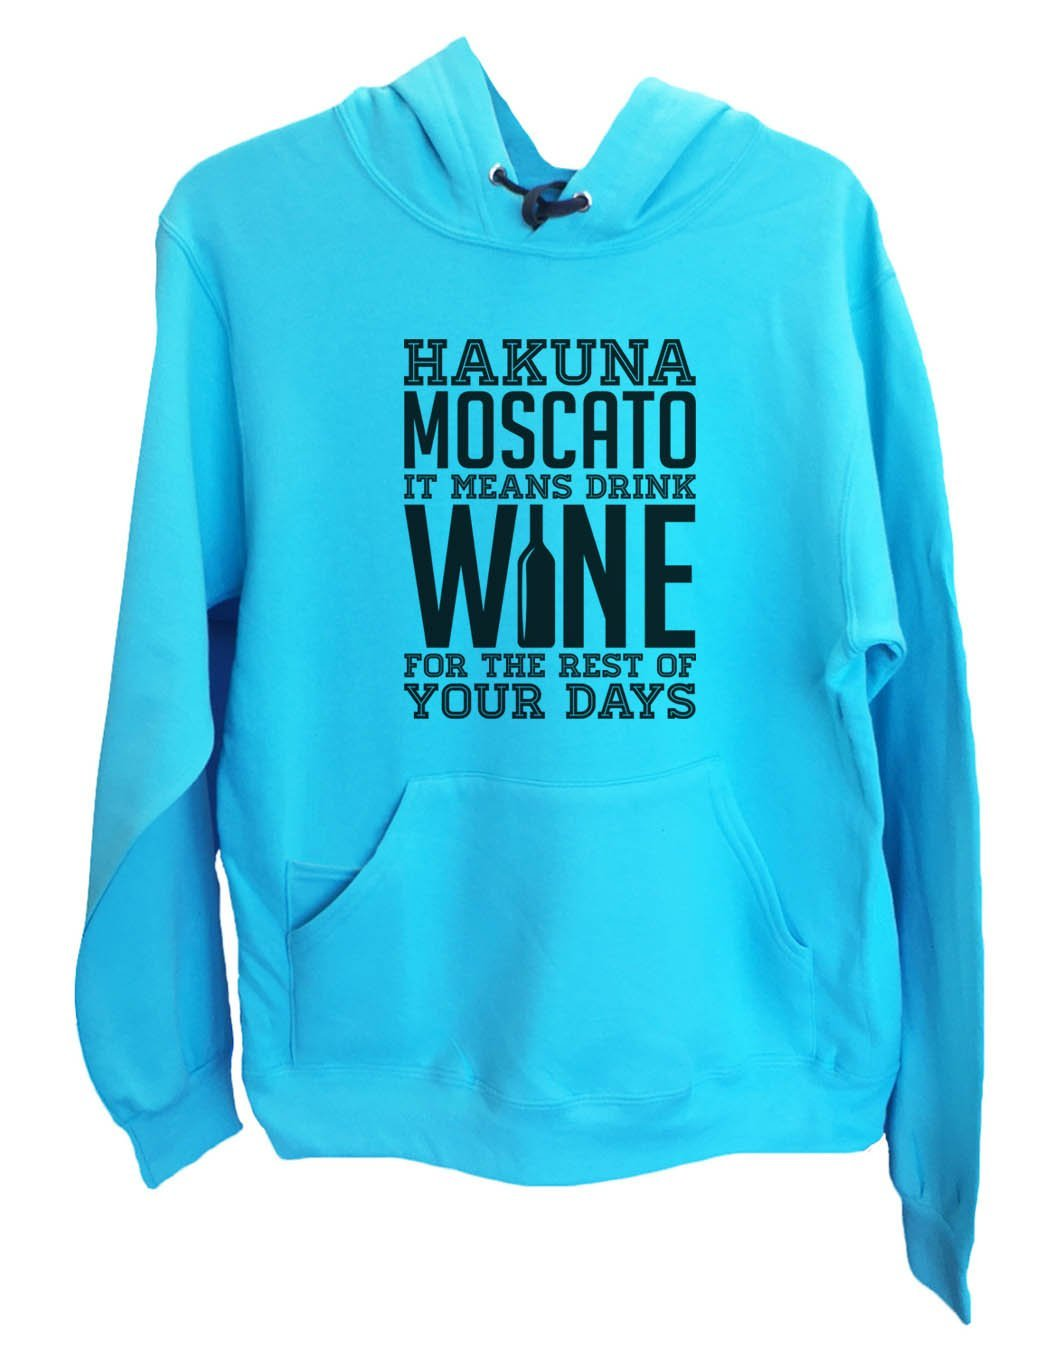 UNISEX HOODIE - Hakuna Moscato It Means Drink Wine For The Rest Of Your Days - FUNNY MENS AND WOMENS HOODED SWEATSHIRTS - 2166 Funny Shirt